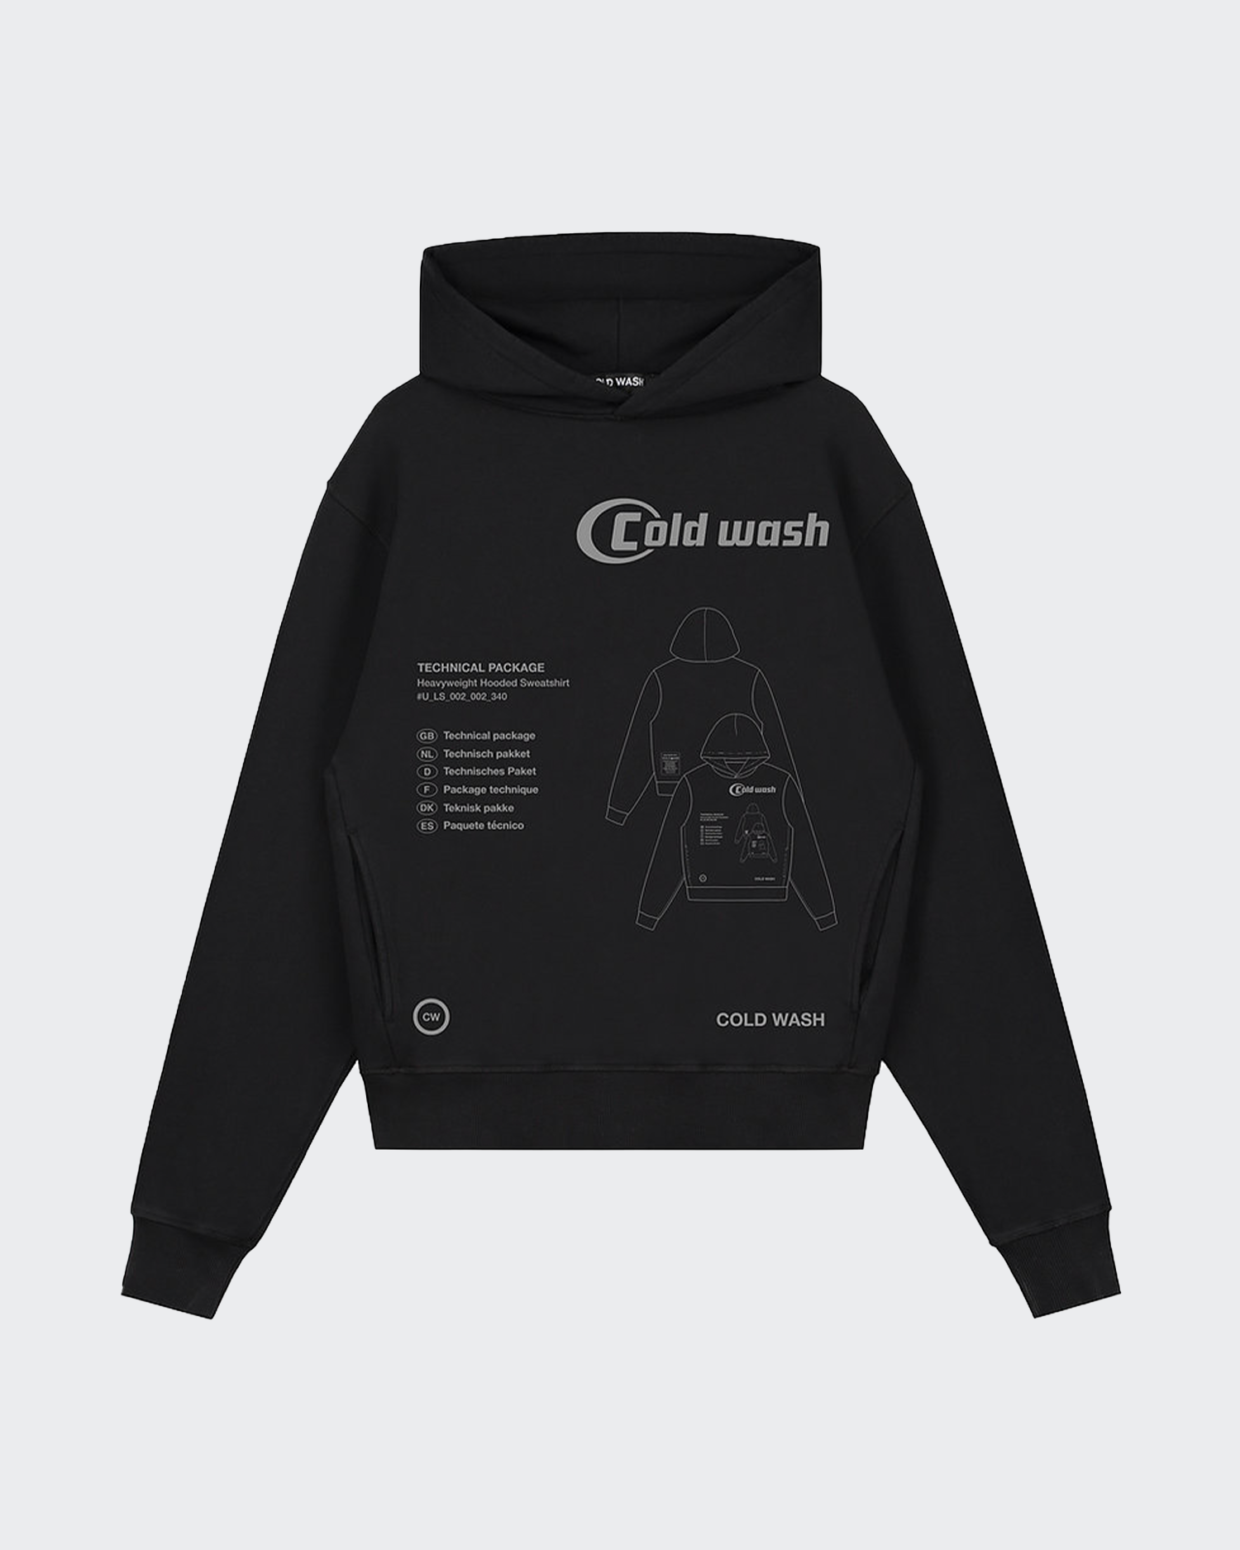 Cold Wash Tech Pack Hooded Sweatshirt